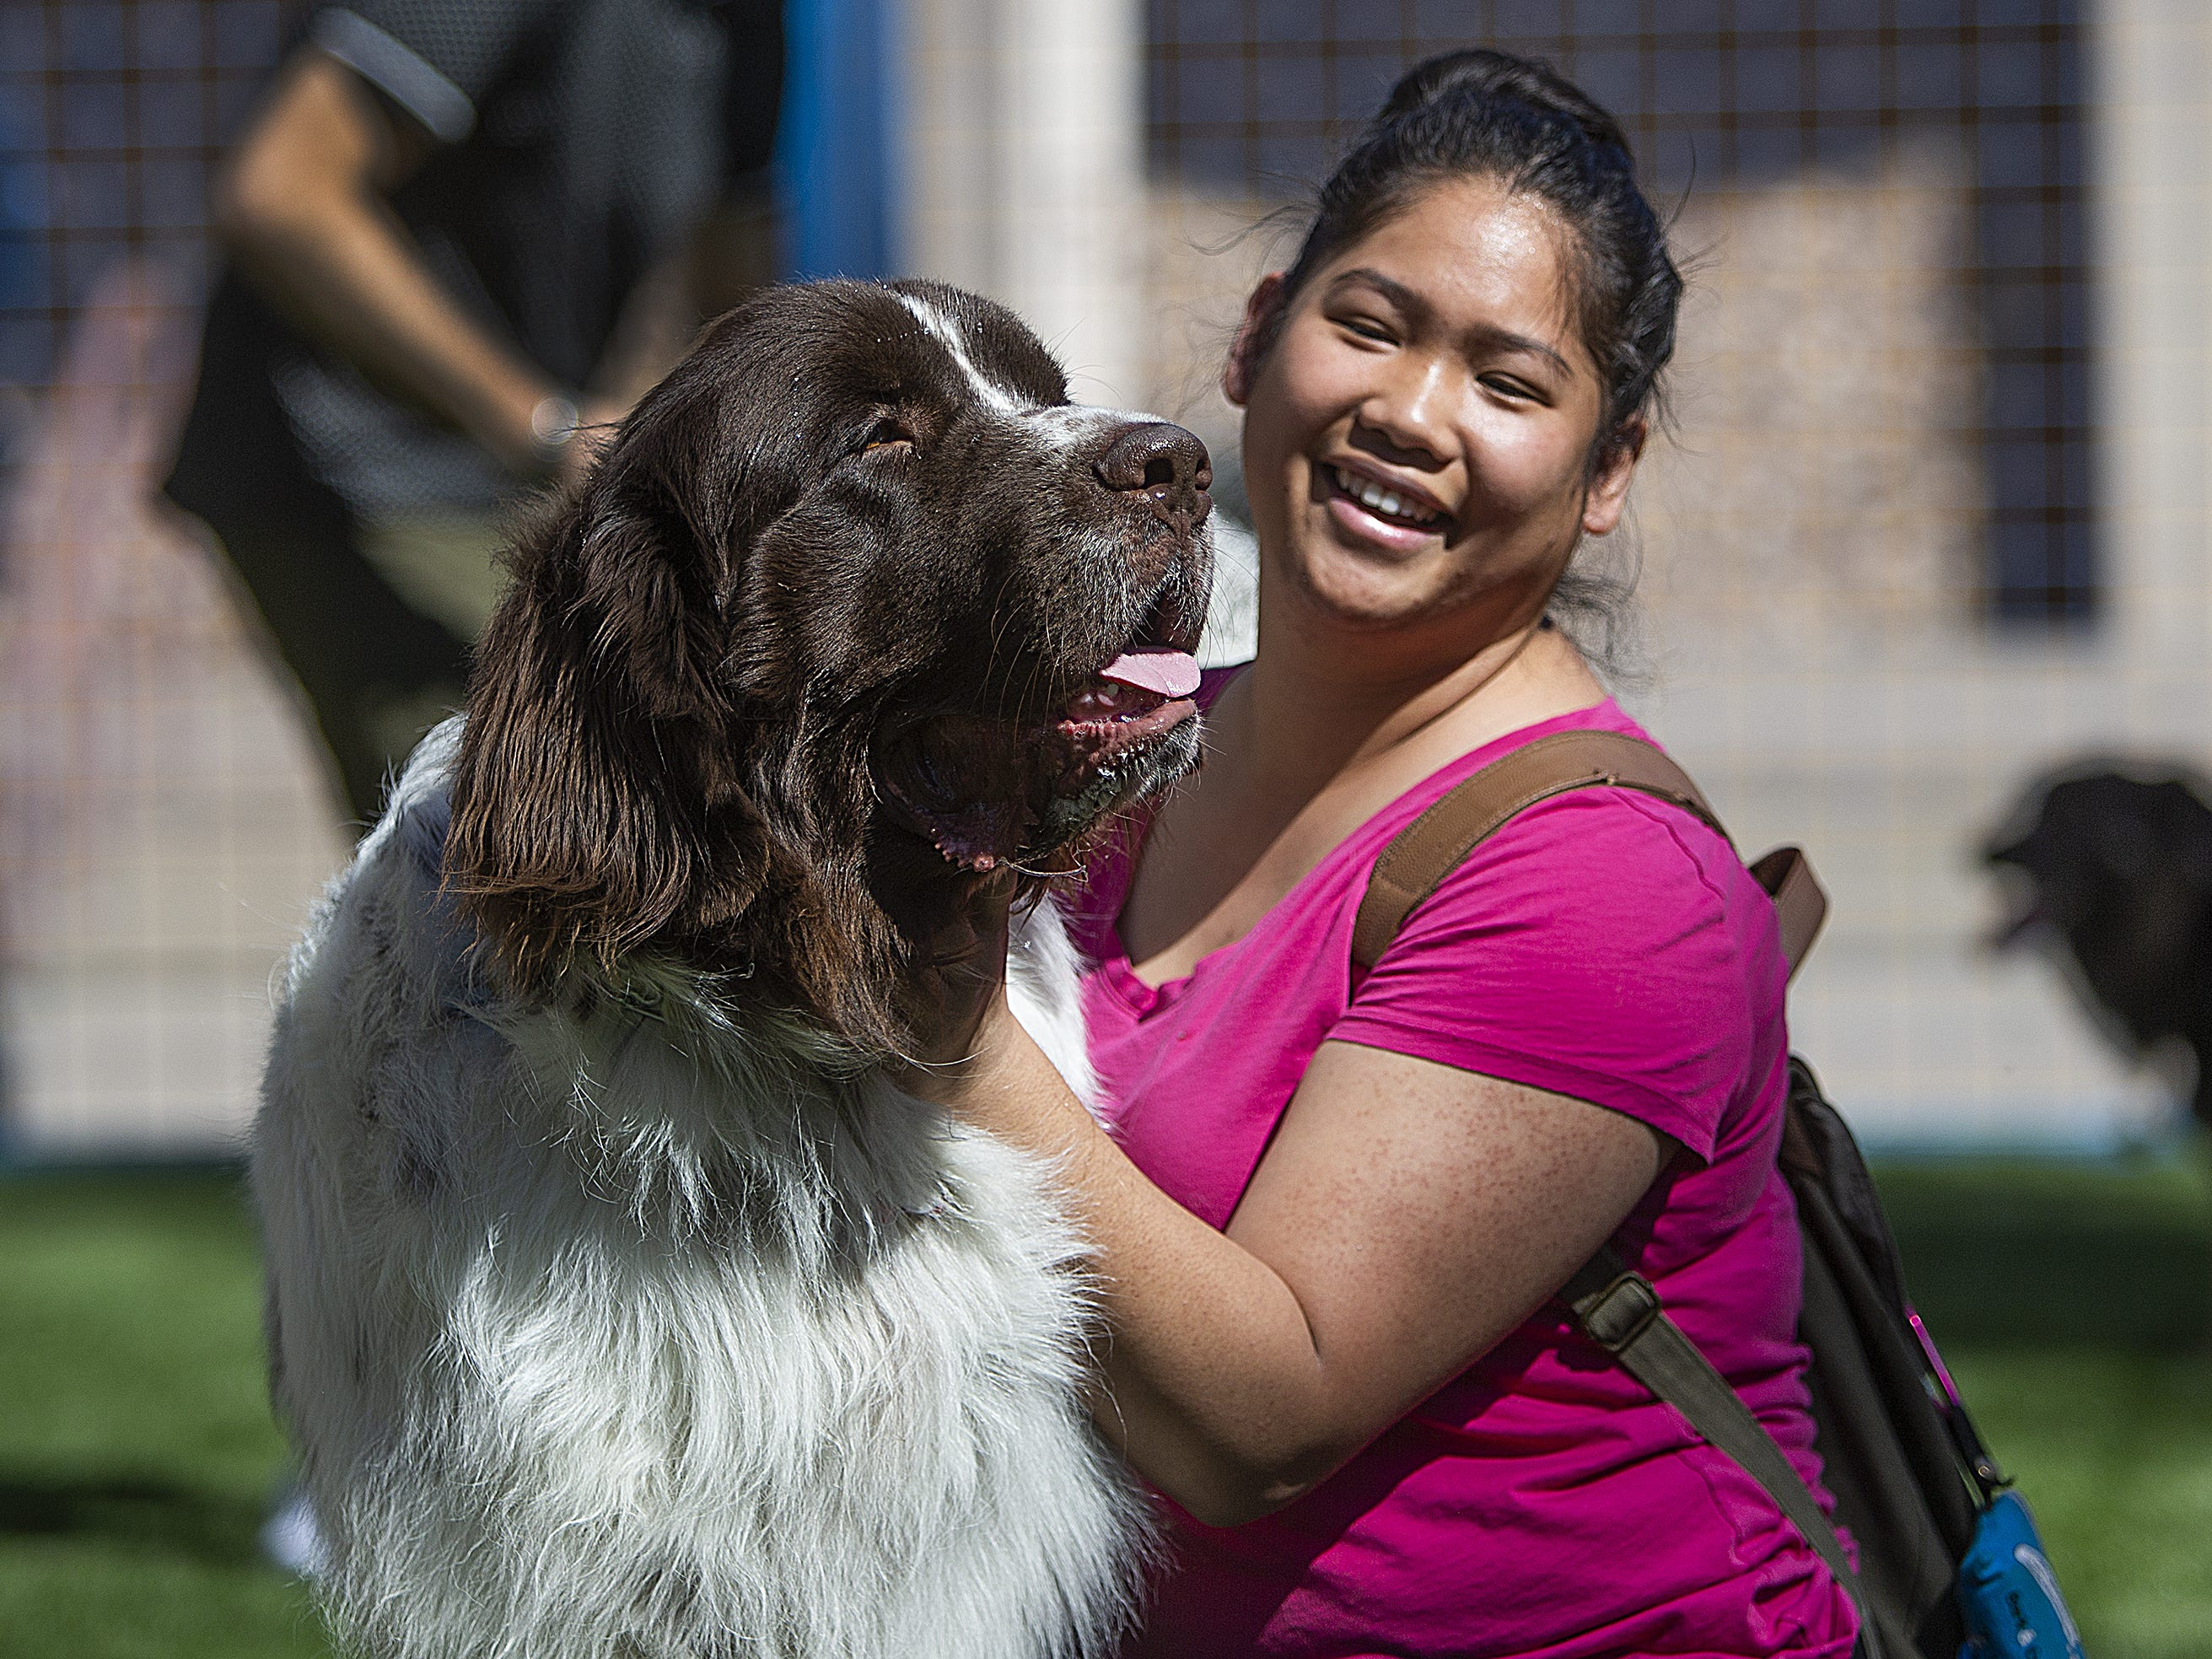 Napoleon, a Newfoundland, and his owner, Kristie Le, along with other dogs and puppies play at the grand opening of the Thelda Williams Paw-Pup Park at 200 West Jefferson St. in downtown Phoenix, Monday, March 18, 2019. The dog park is sponsored by the Downtown Phoenix Partnership and the city of Phoenix with major contributions from Petsmart Charities.